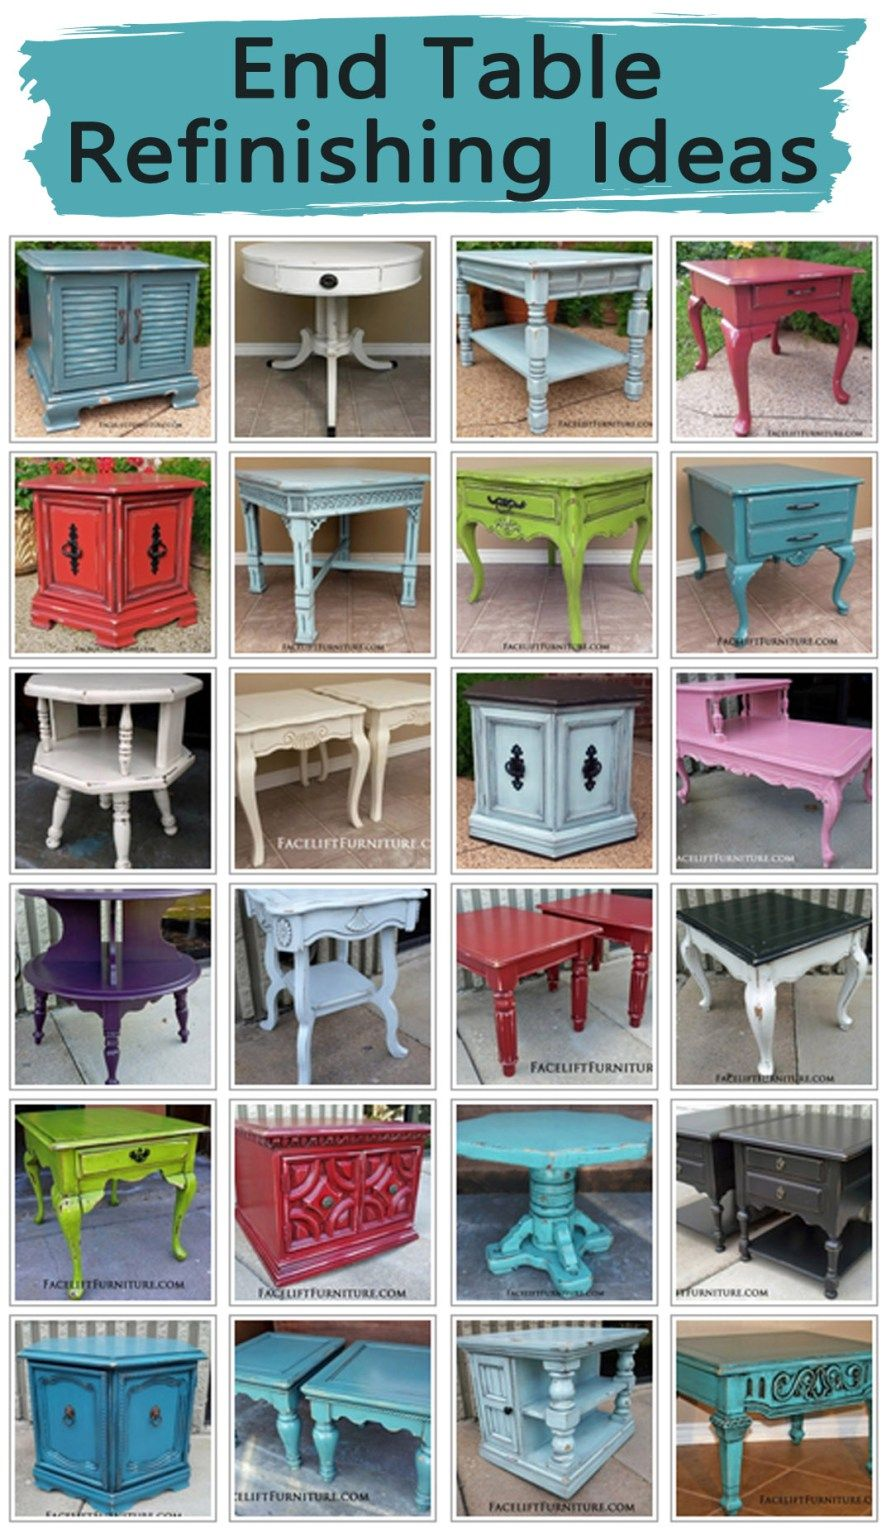 end tables are a great way to introduce the upstyled look of painted glazed and